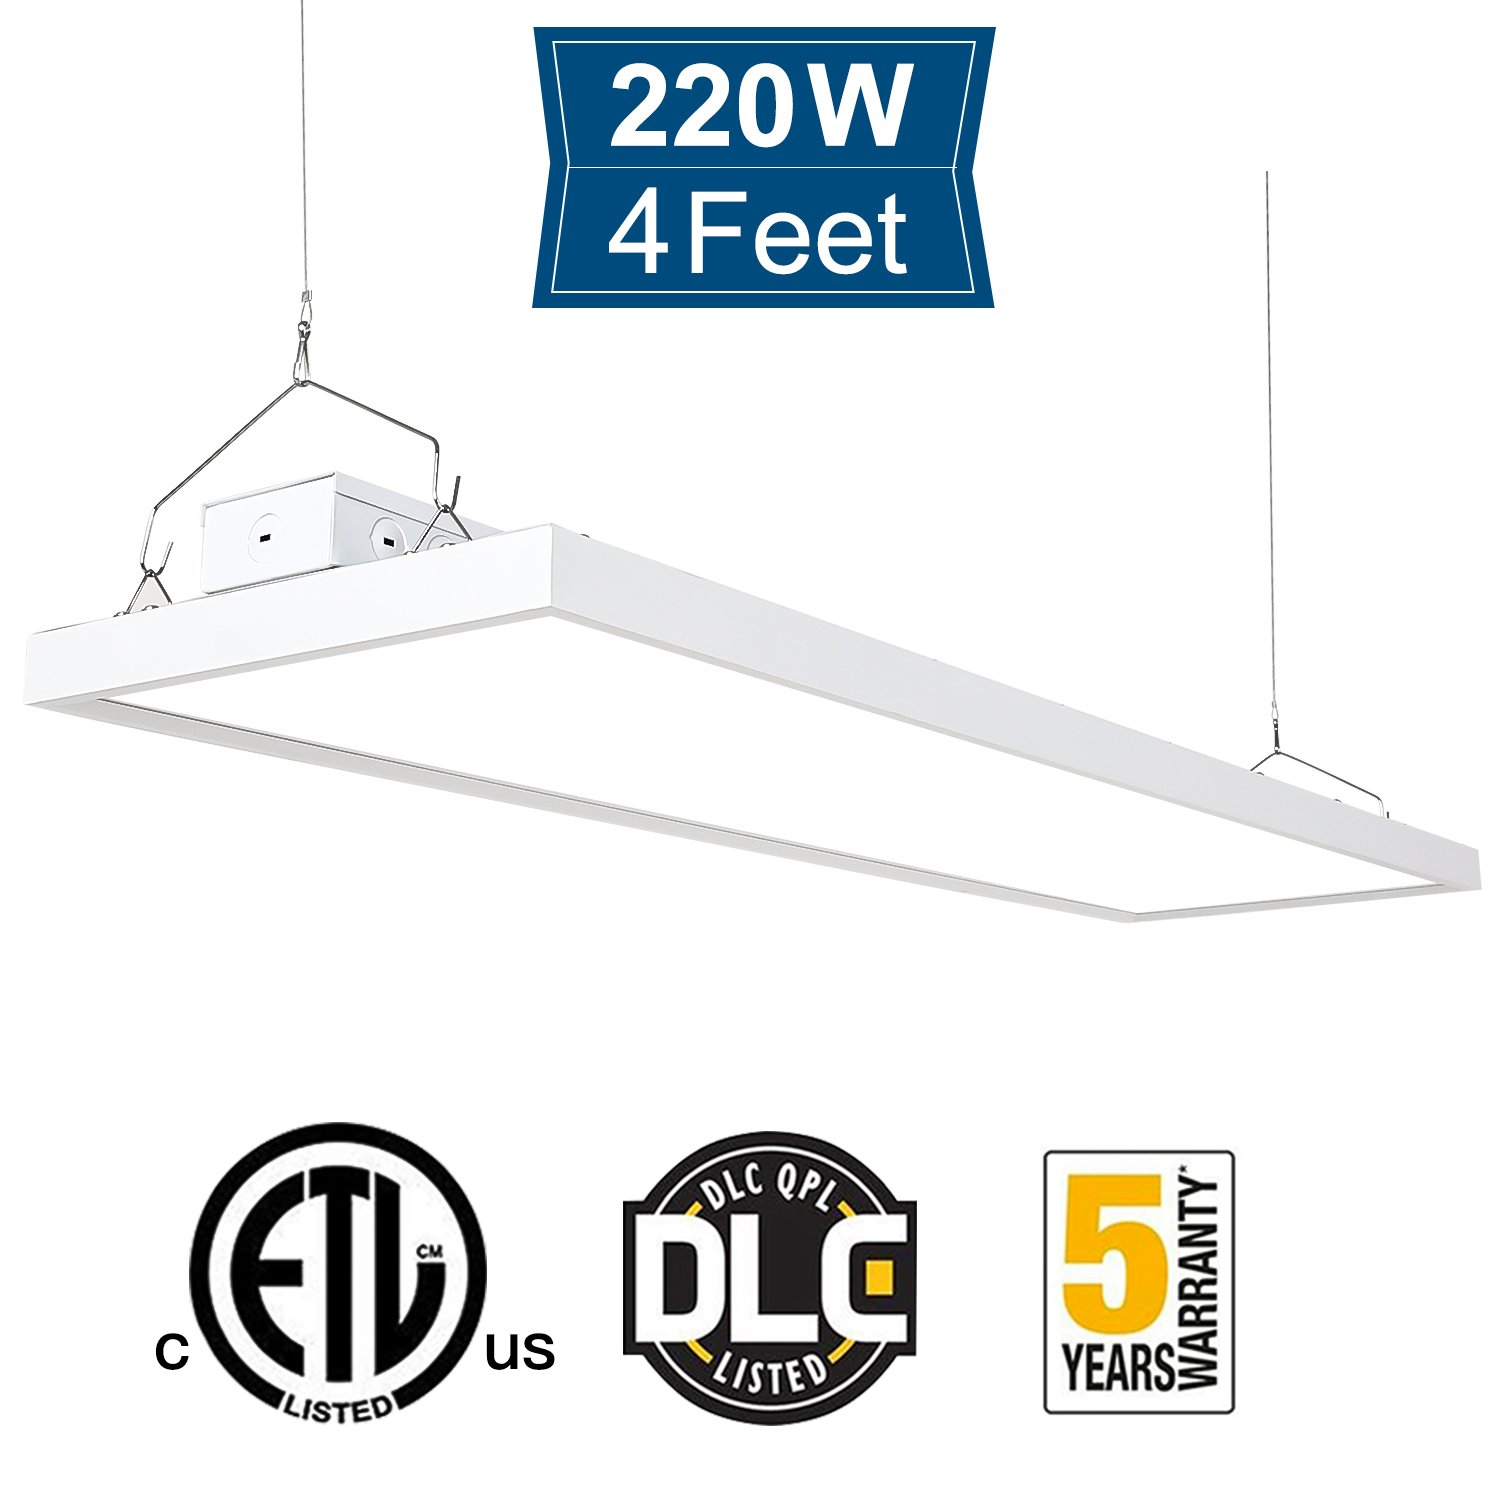 Amico 220W 4FT High Bay Light Fixture, 5000K 26400 Lumens Dimmable Commercial Grade Indoor Industrial Lights, DLC & ETL-Listed, Warehouse, Factory, Garage, Shop light